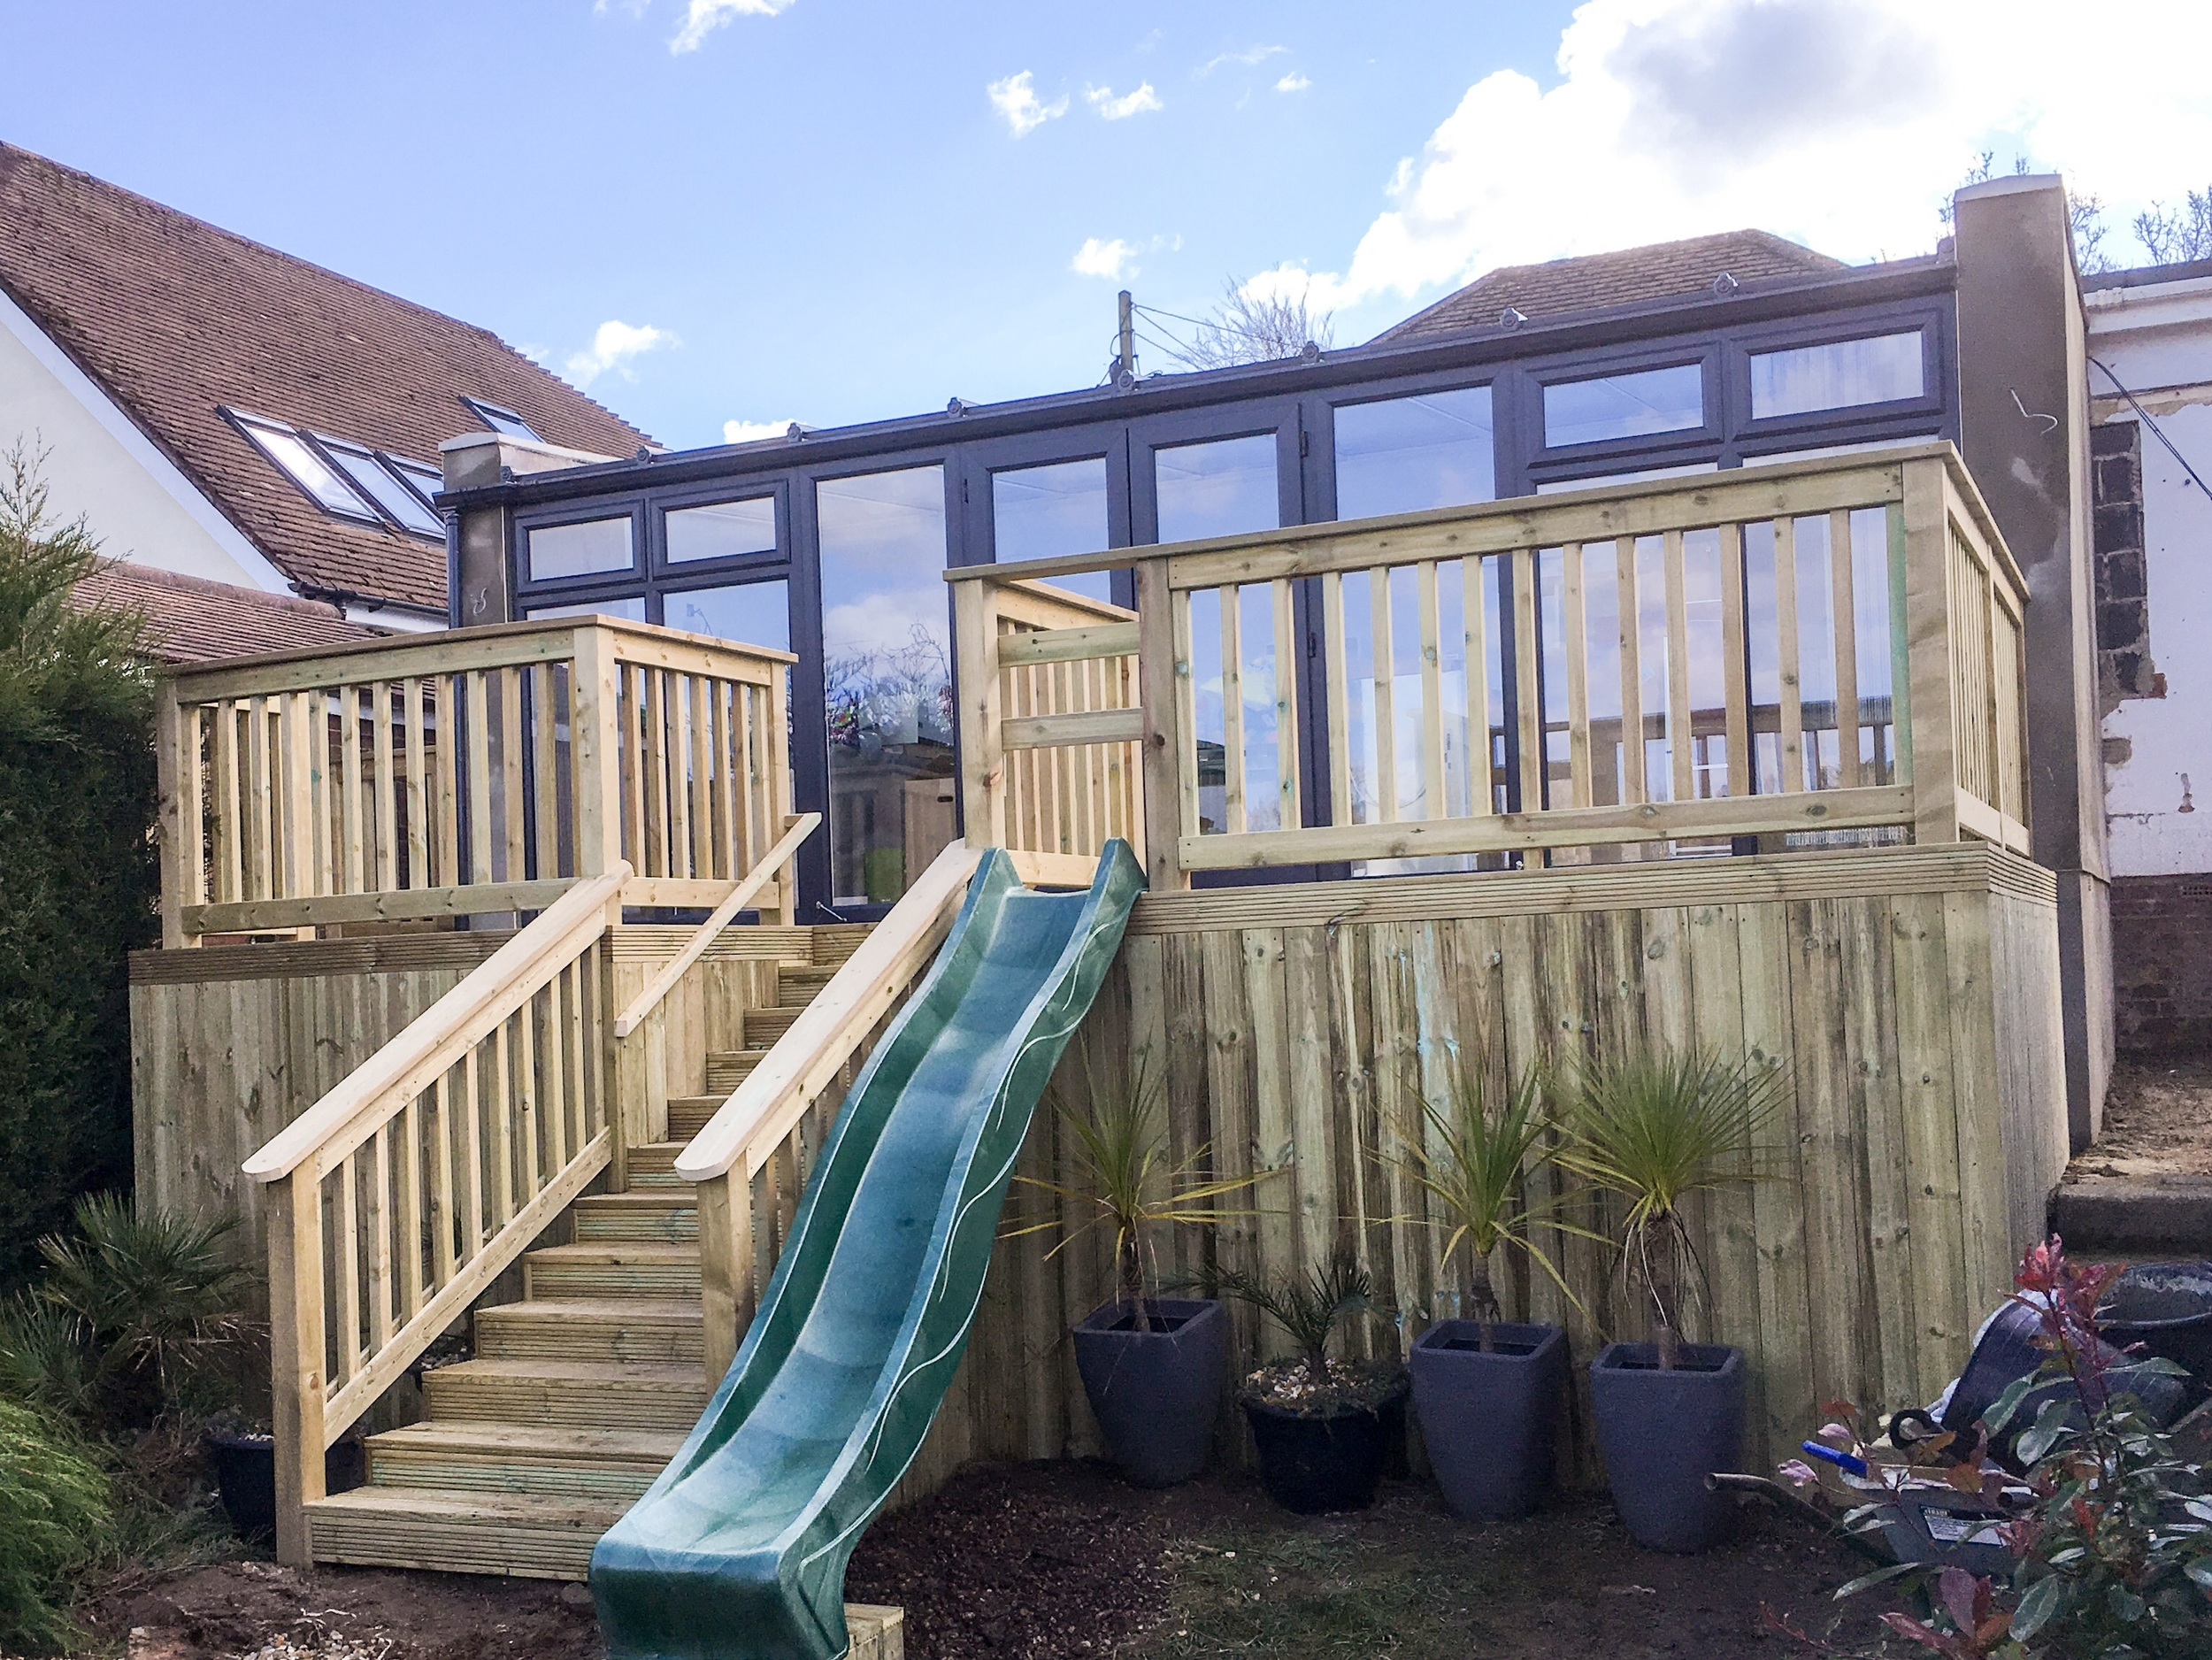 The deck was classed around the outside with smooth Deckboards.